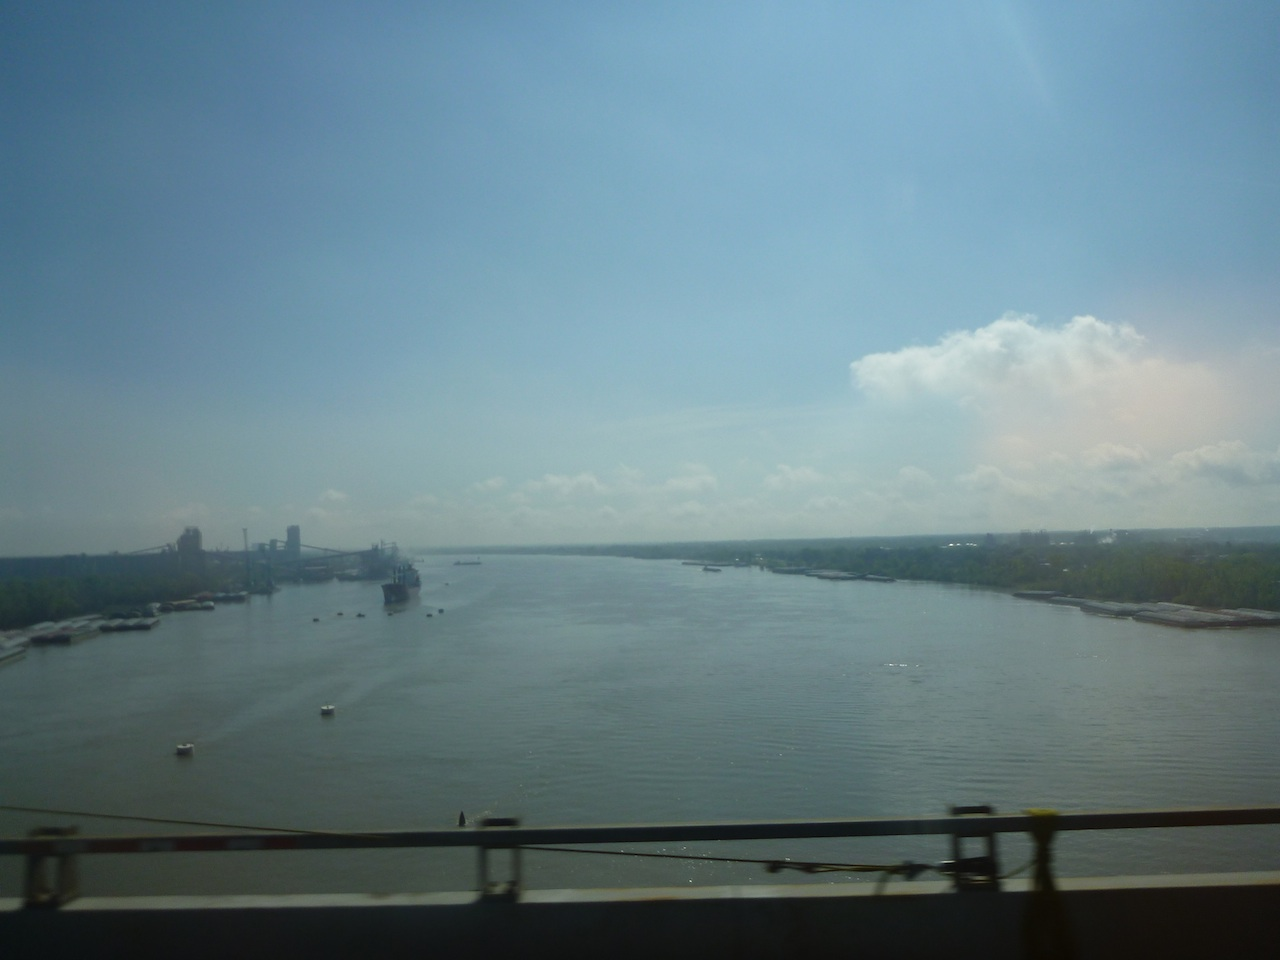 Passing Over A Waterway In Louisiana